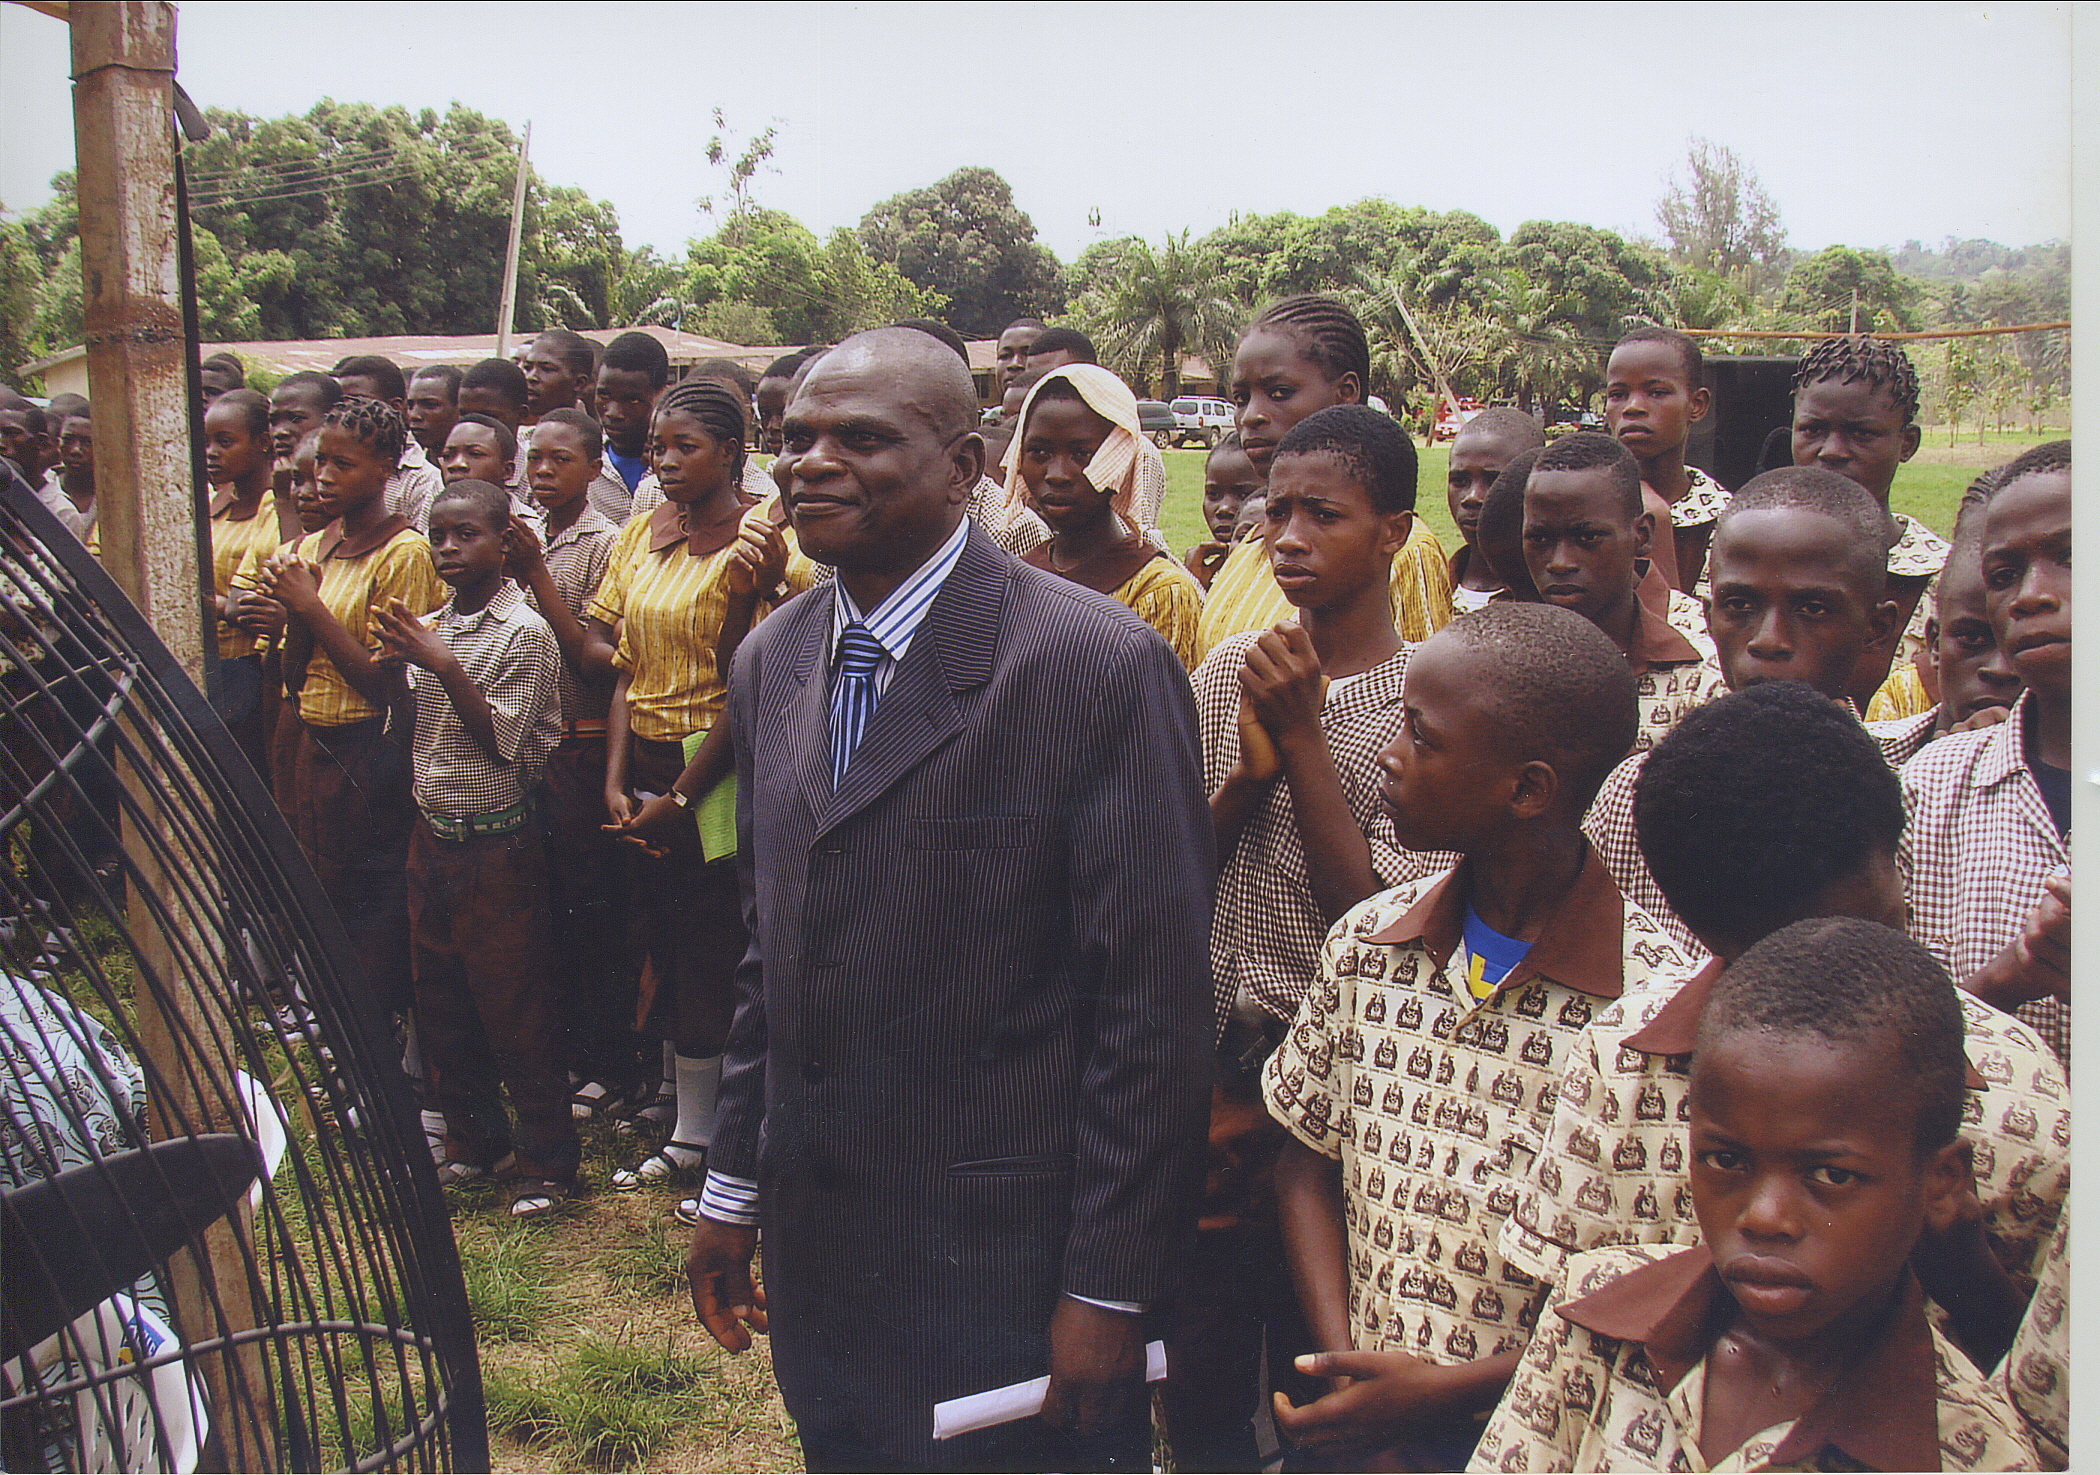 Principal Ajamu Of The Community Grammar School Surrounded By His Students